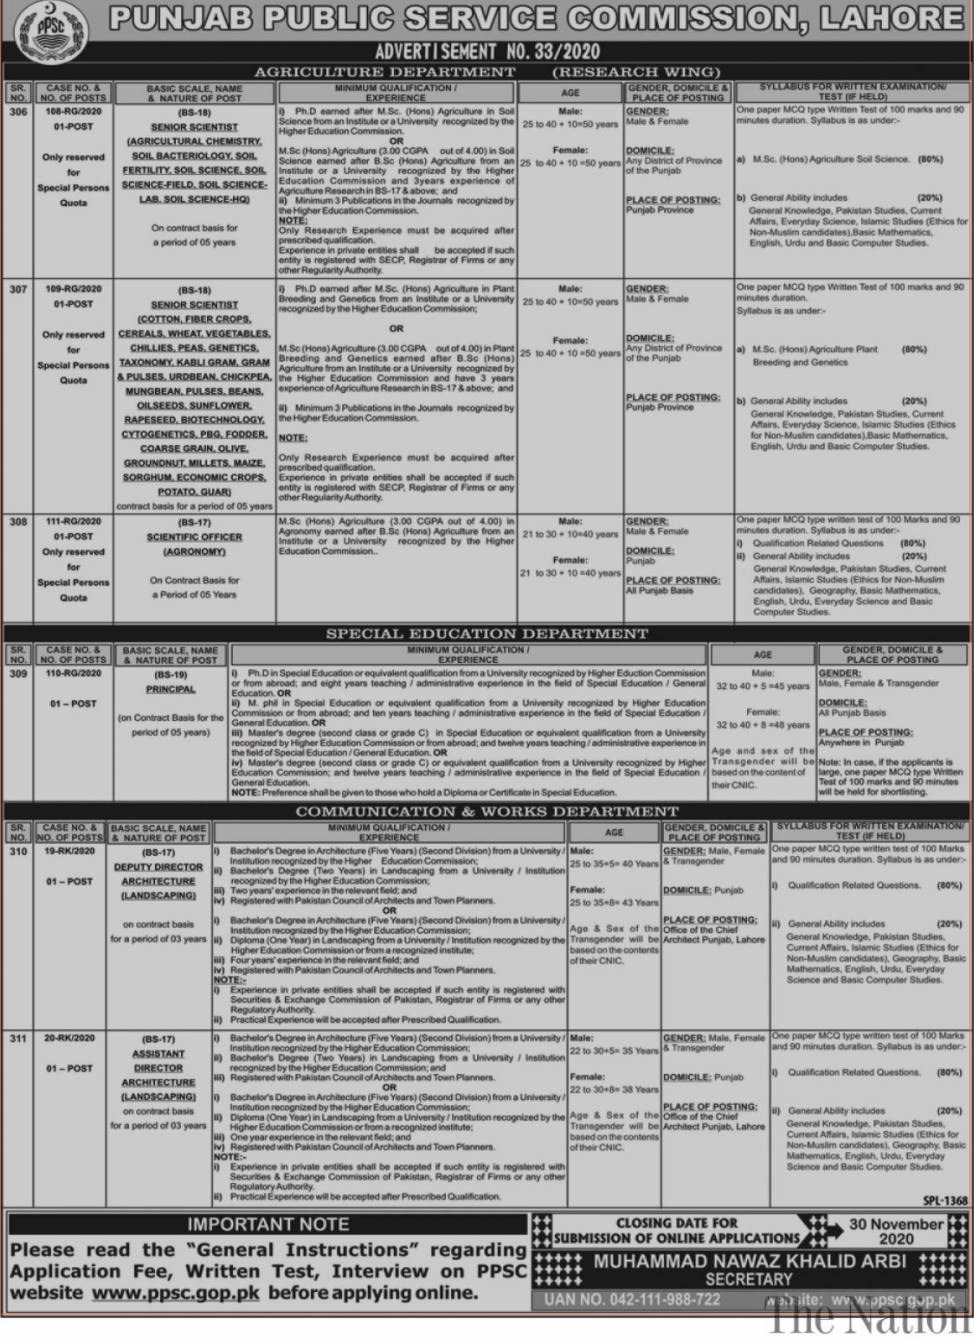 PhD Pass job For Senior Scientist Gram & Pulses in Agriculture Department in Punjab for Punjab candidates -2020